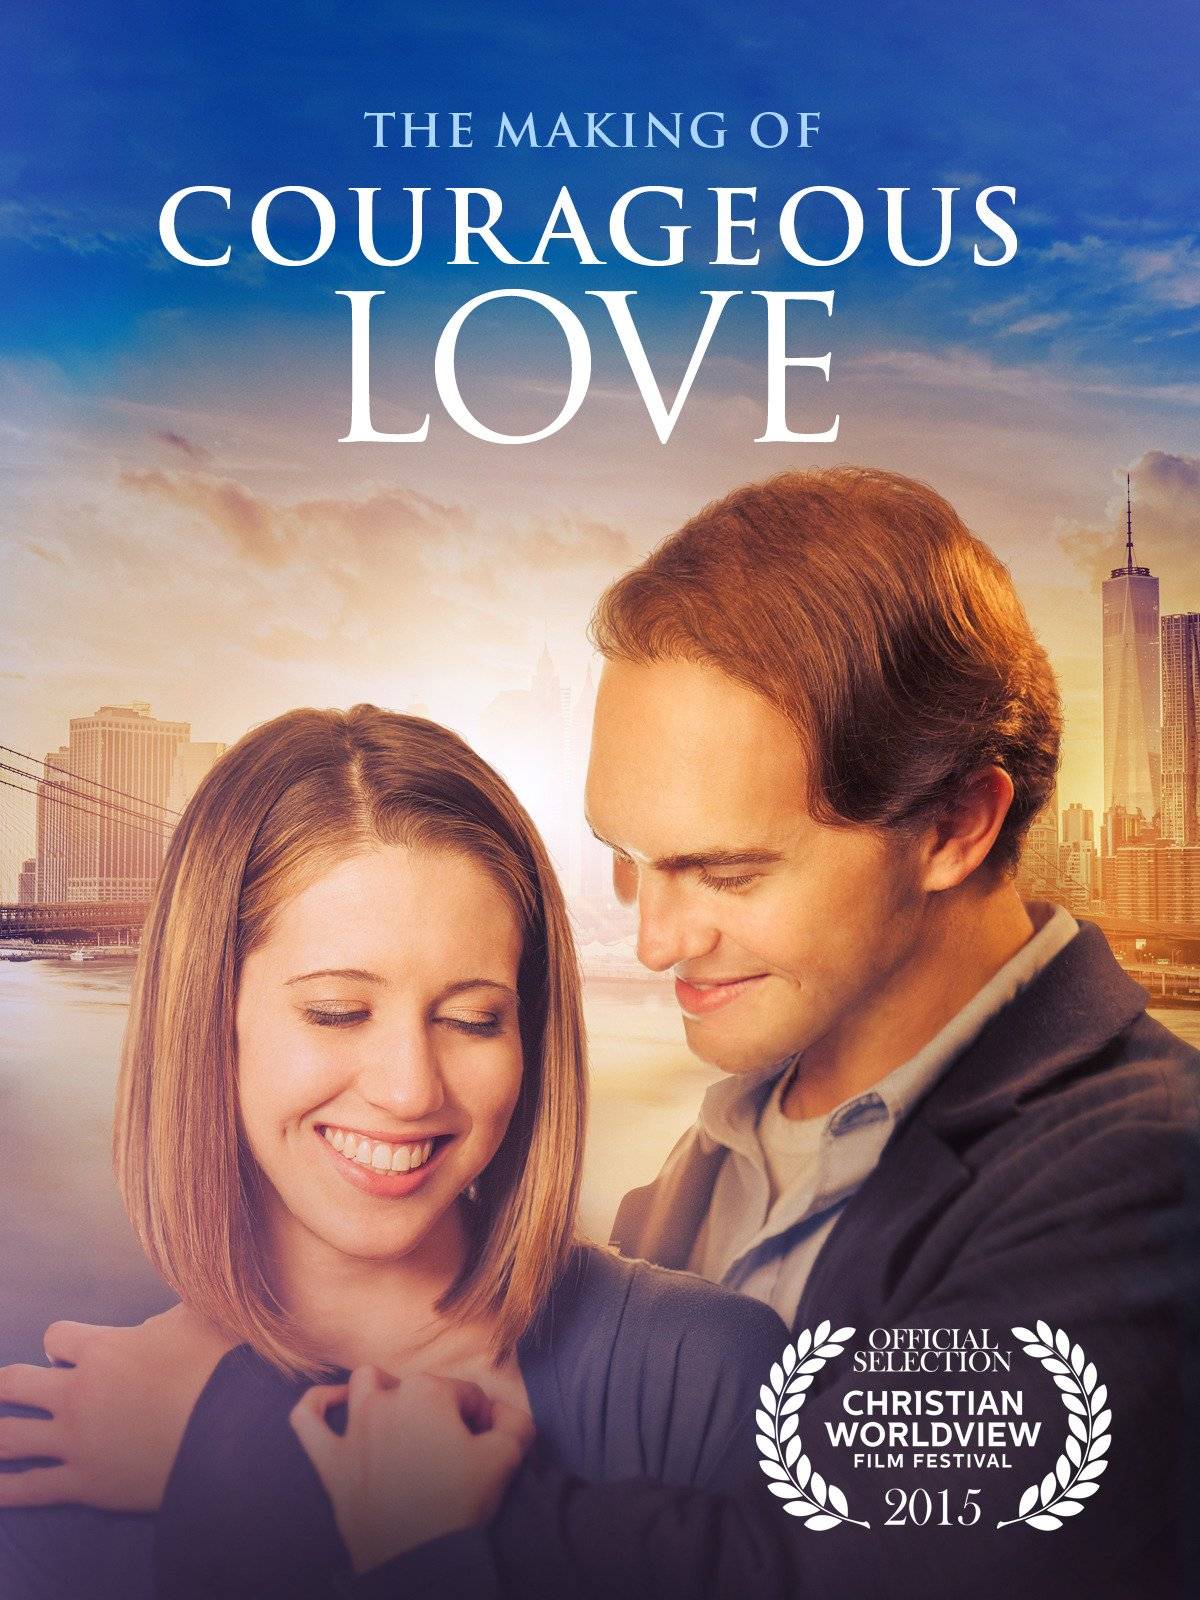 The Making of 'Courageous Love'